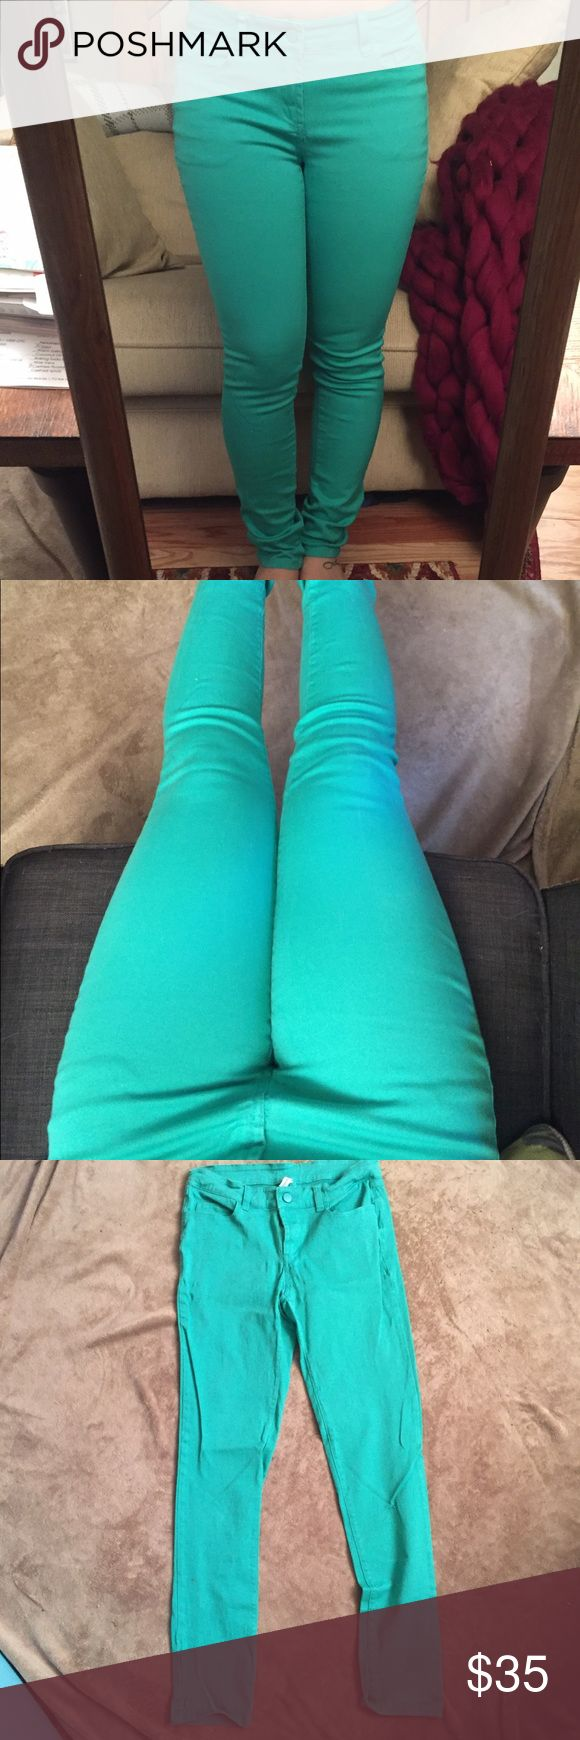 Teal Skinny Jeans Stretchy teal skinny jeans!                                                     Very comfortable pants, great for spring and summer!         Not sure exactly what size, tag only says Medium.              I'm usually a 27/28 for reference, but pants could probably stretch a little more to possibly fit a 29. Pants Skinny